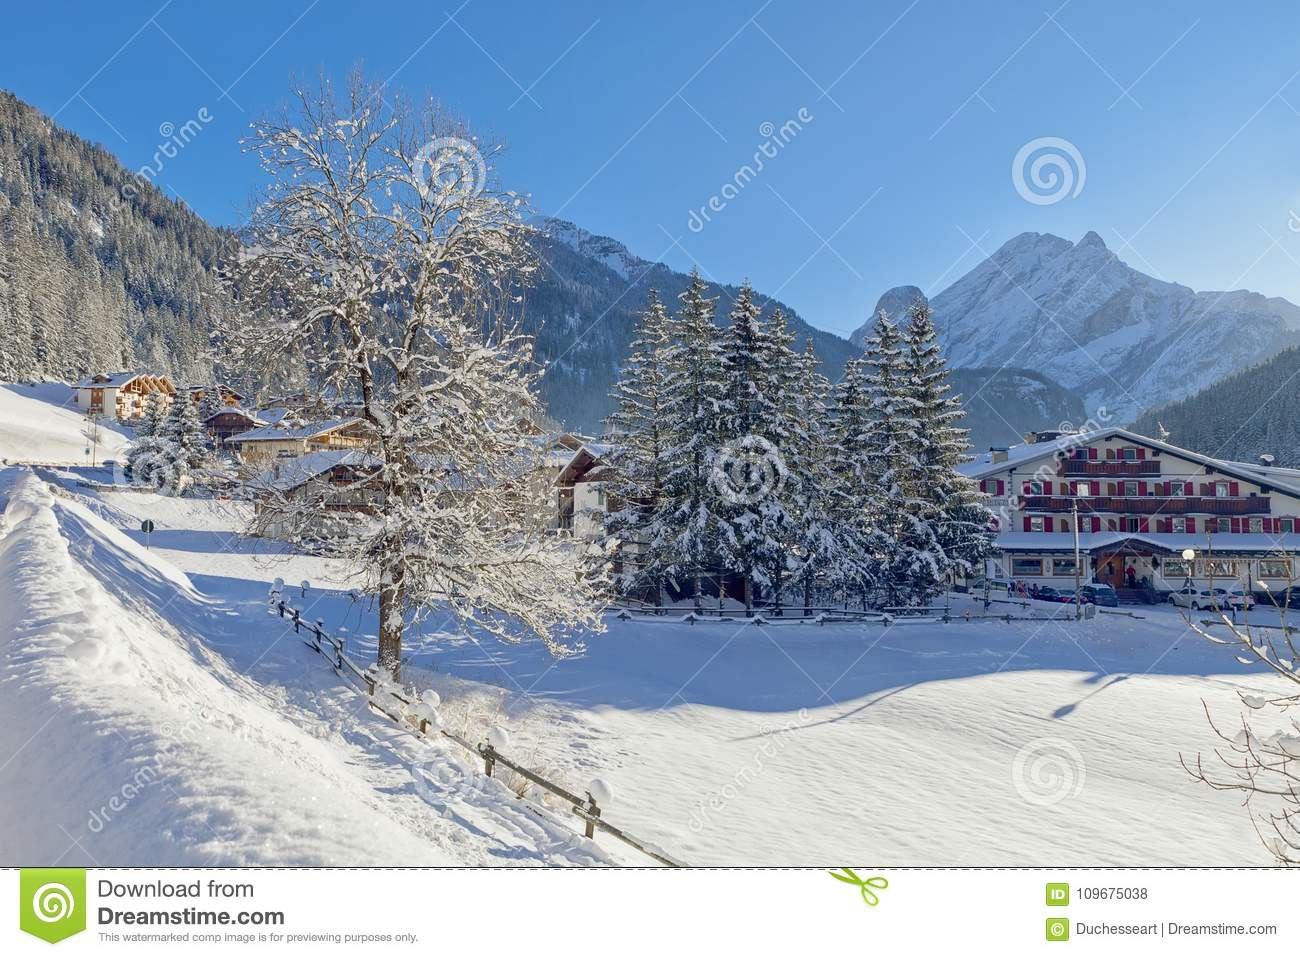 snowy alpine village in italy illuminated by sun with mountains in